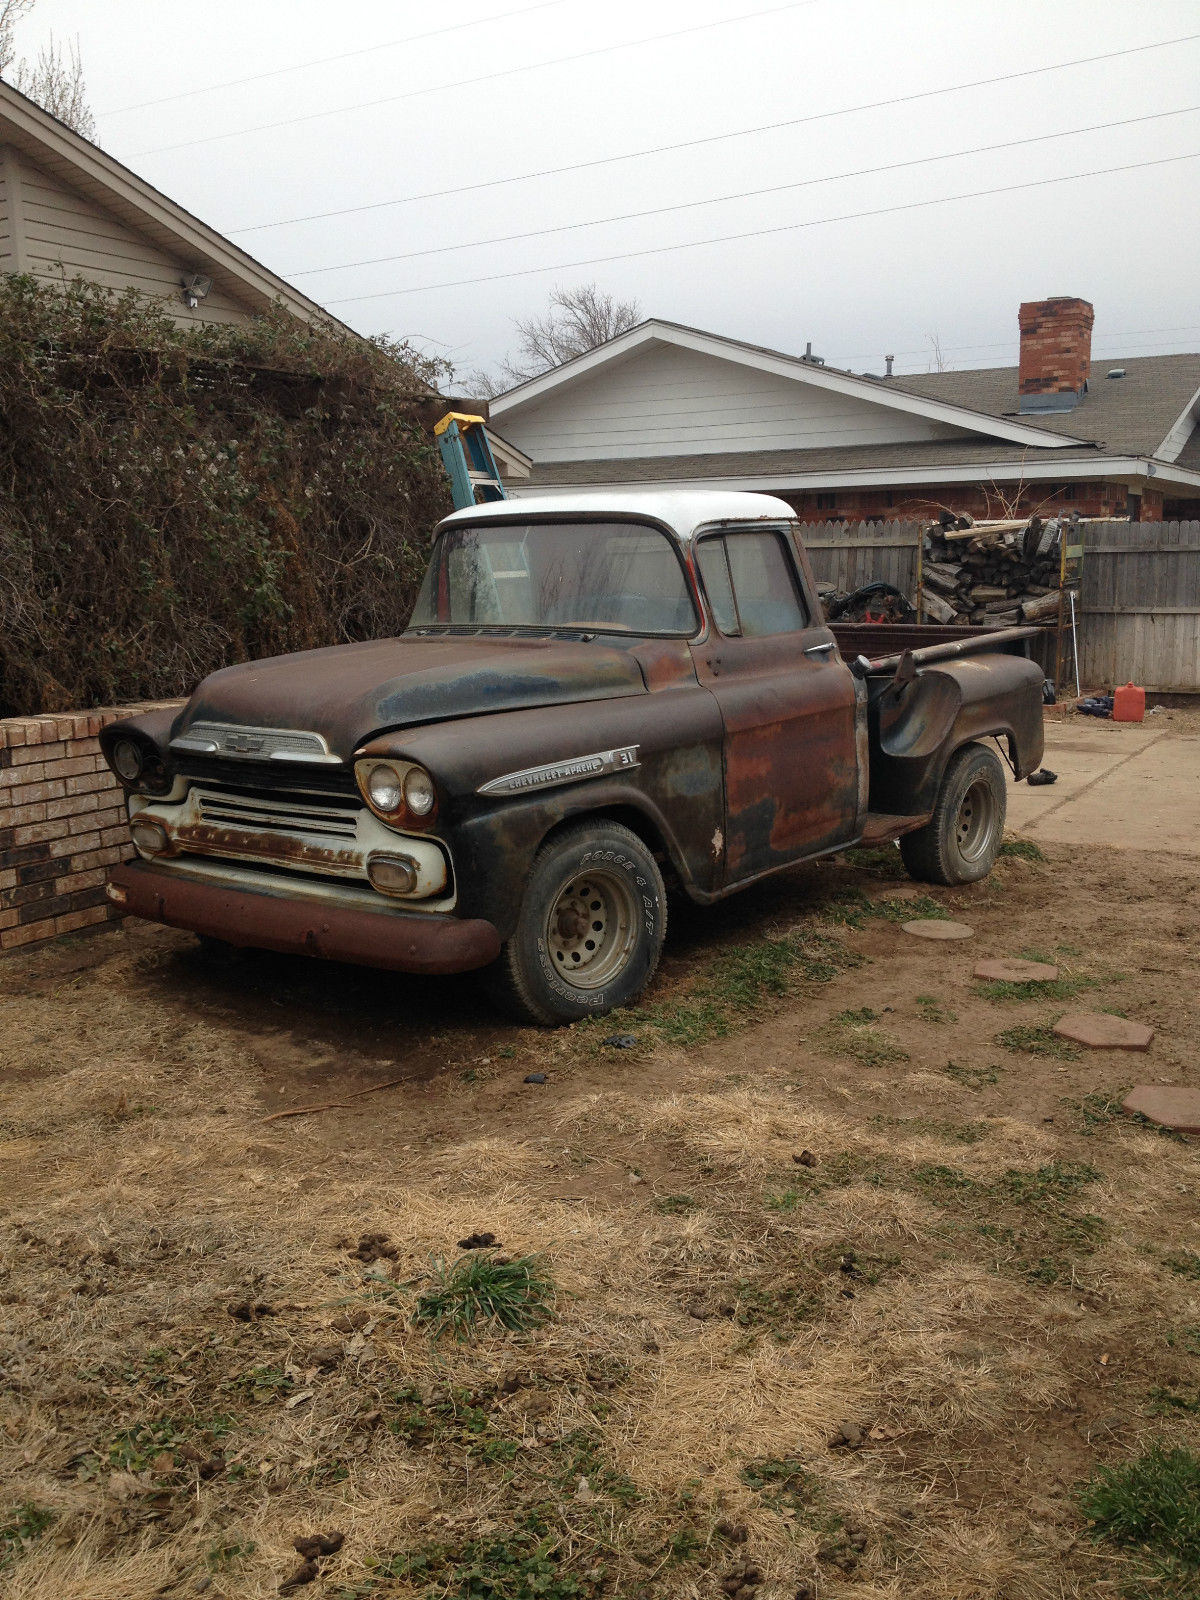 1959 chevrolet apache stepside pickup project for sale in amarillo texas united states. Black Bedroom Furniture Sets. Home Design Ideas